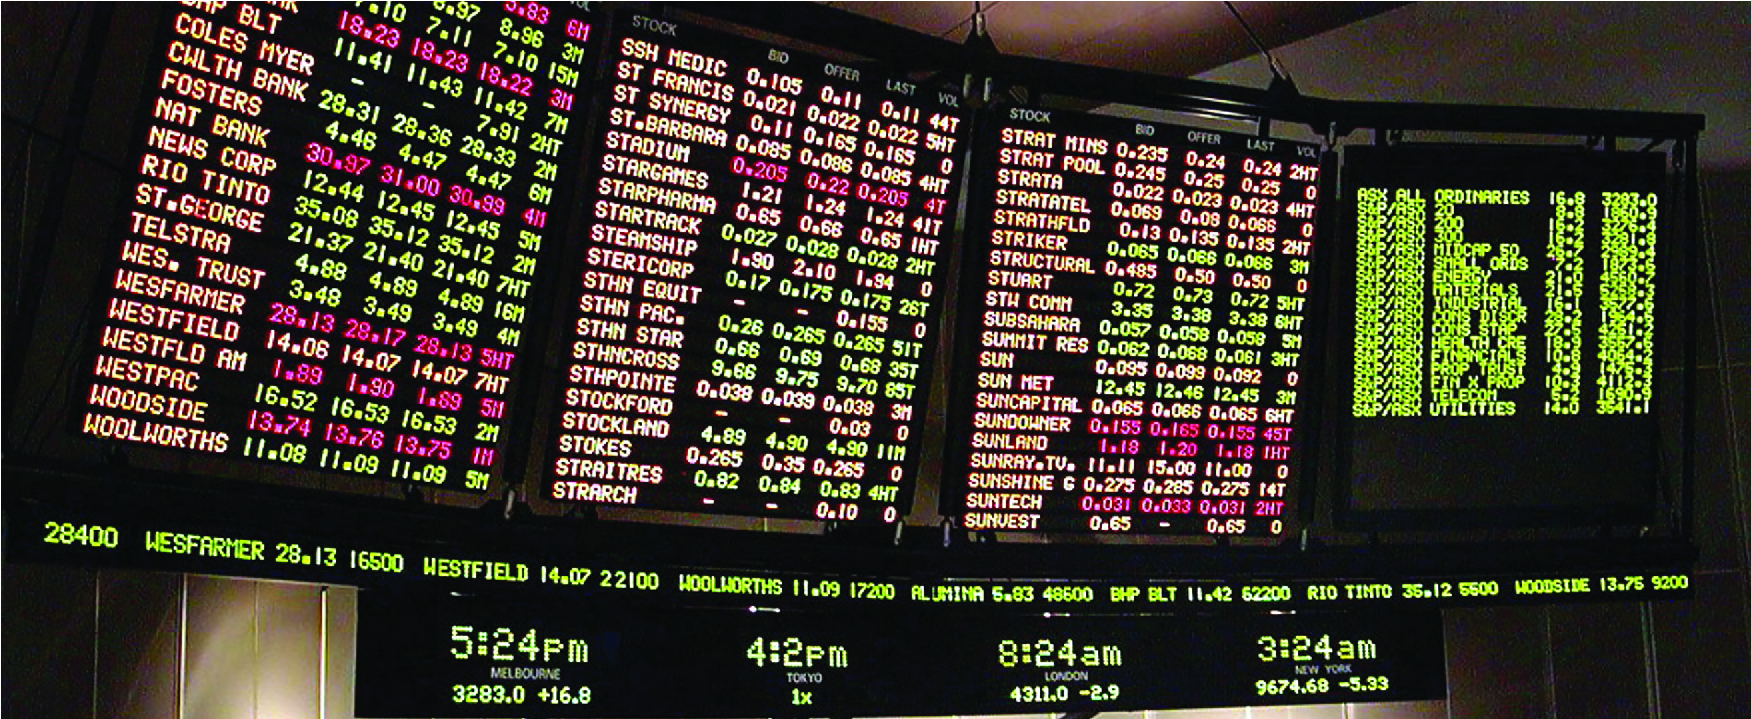 A picture of a large electronic stock exchange board.